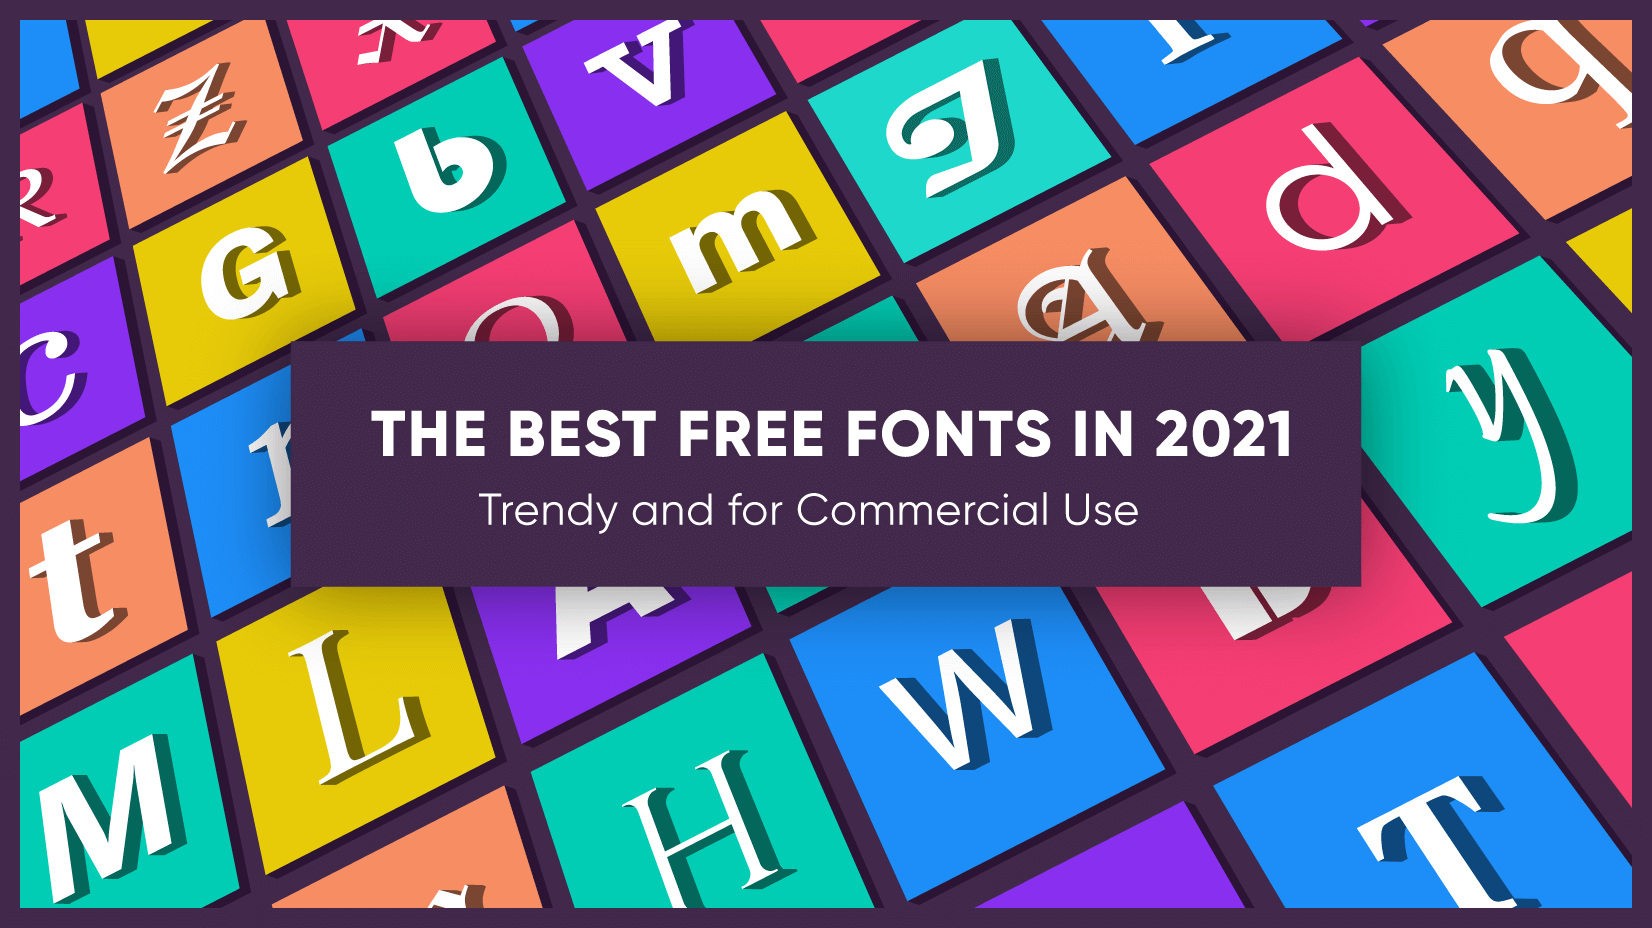 The Best and Trendy Free Fonts in 2021